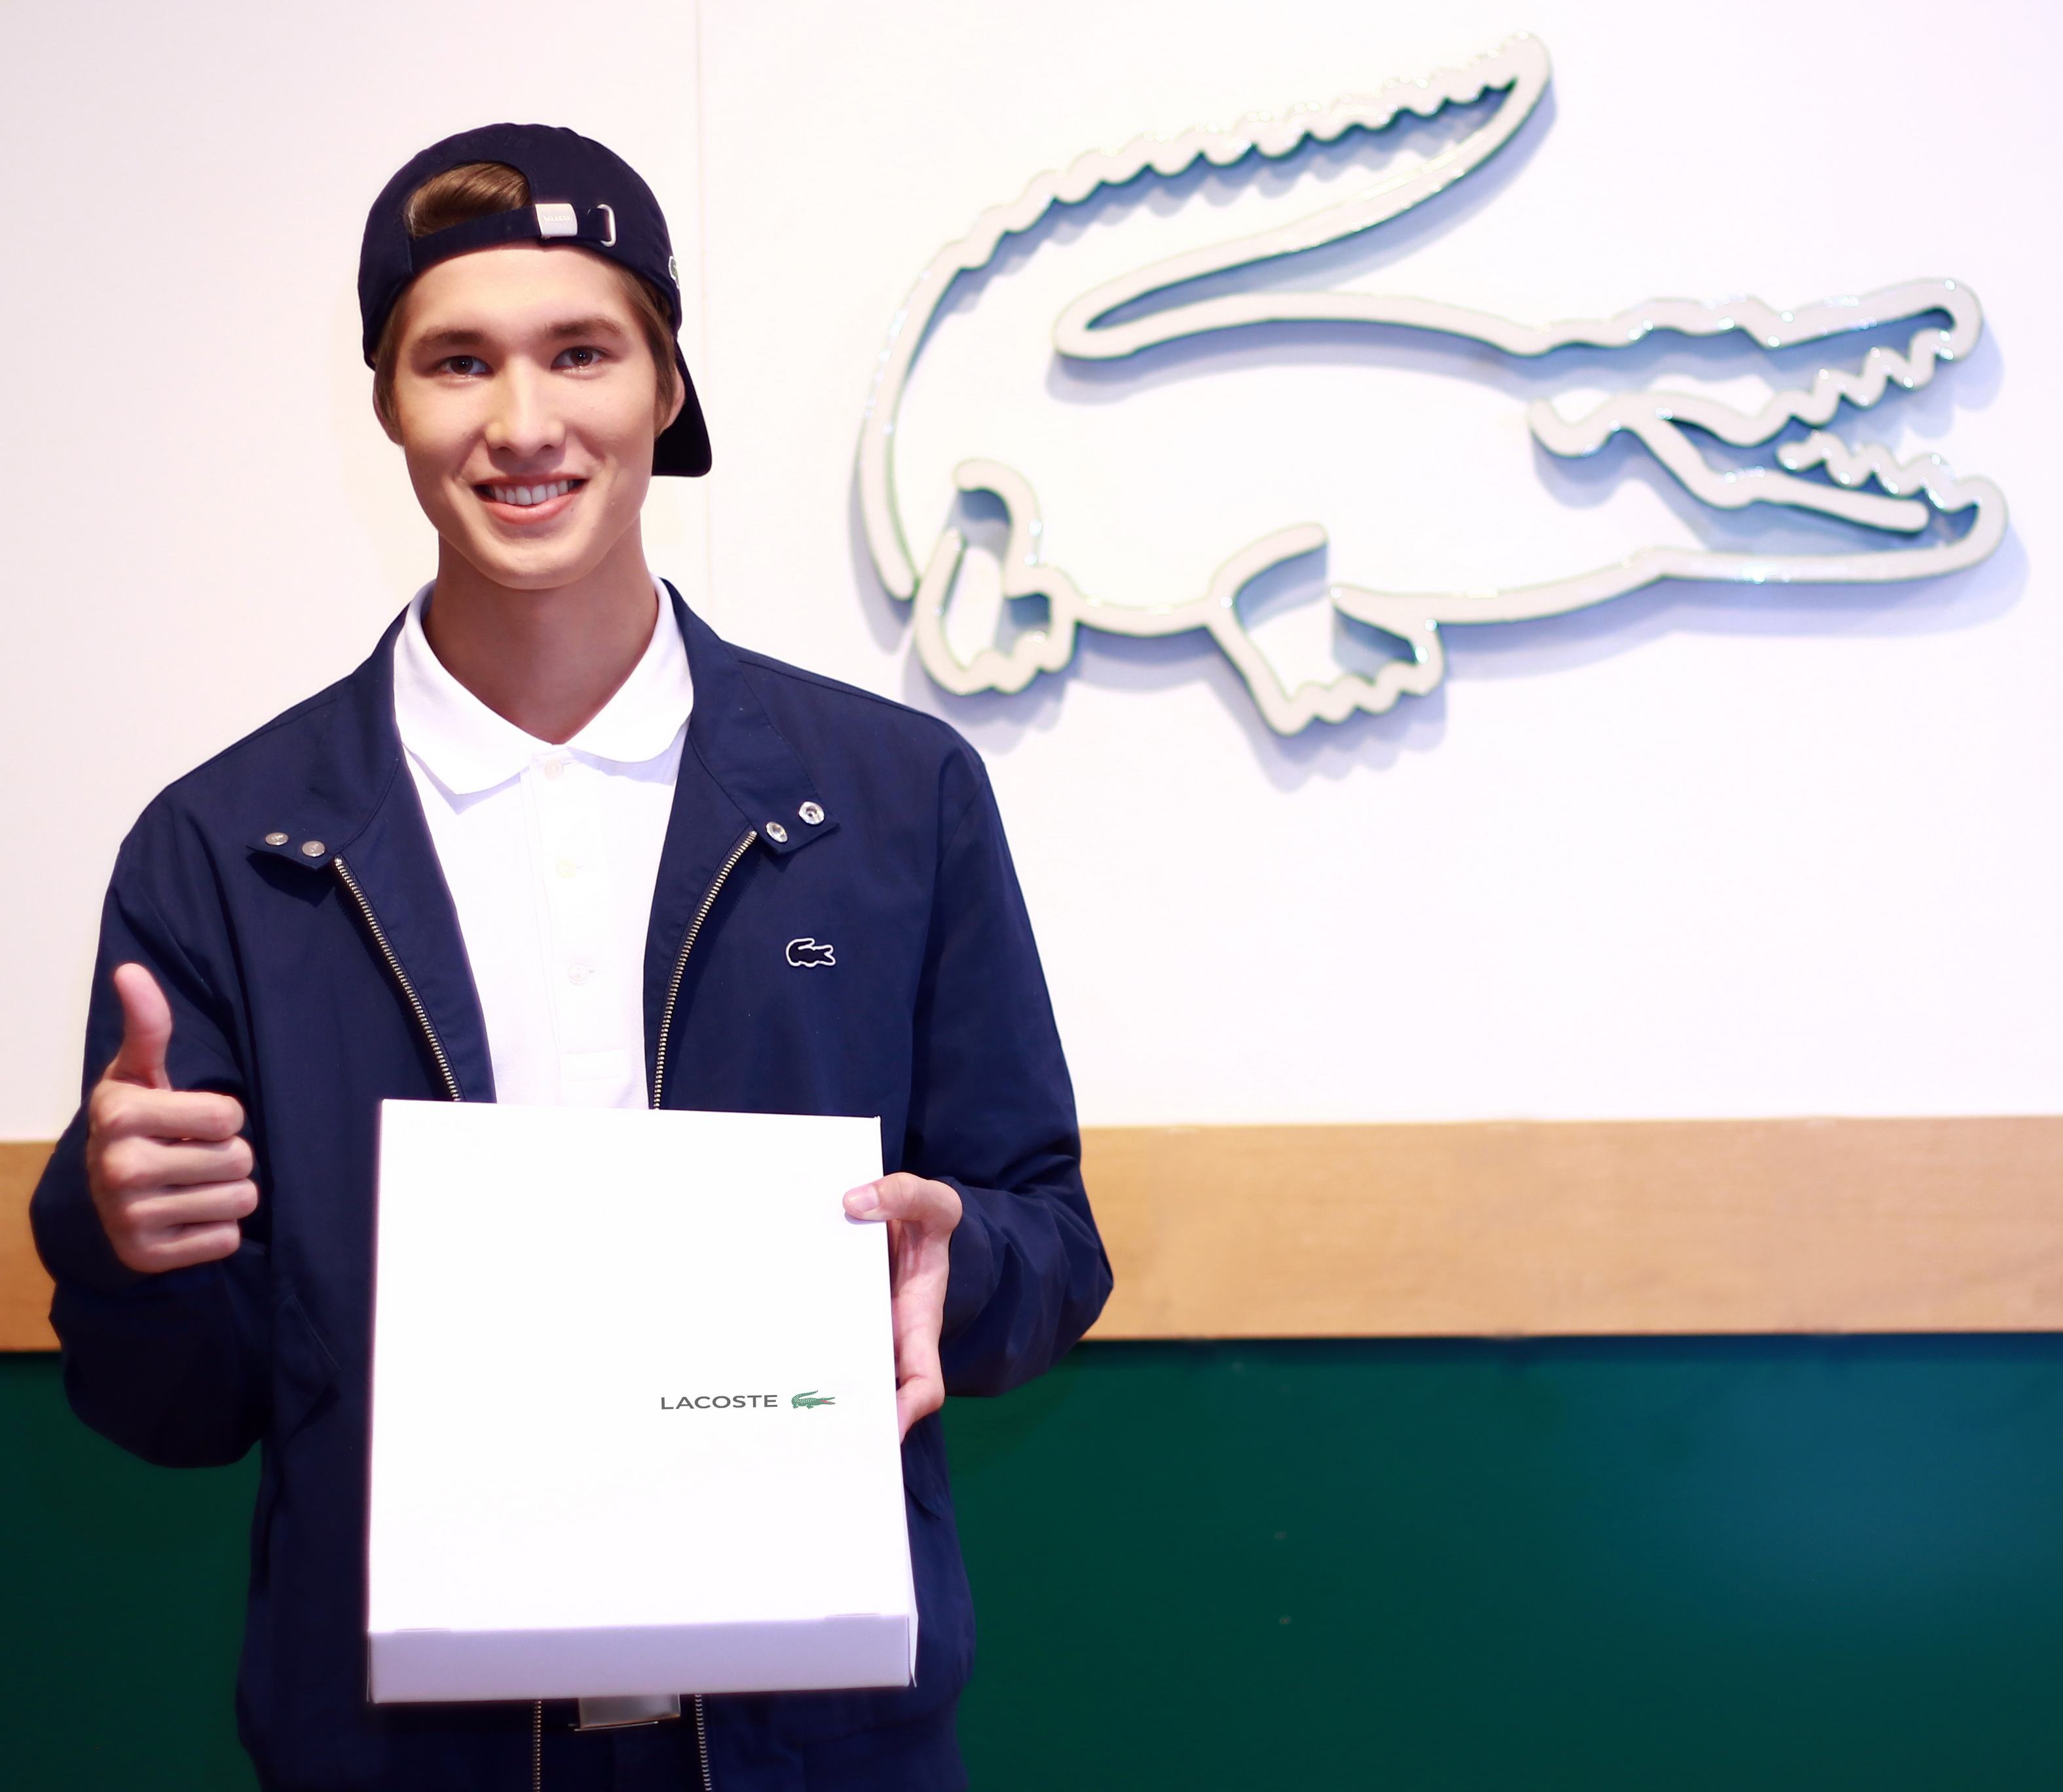 [Lacoste] A perfect gift... Delivery Man